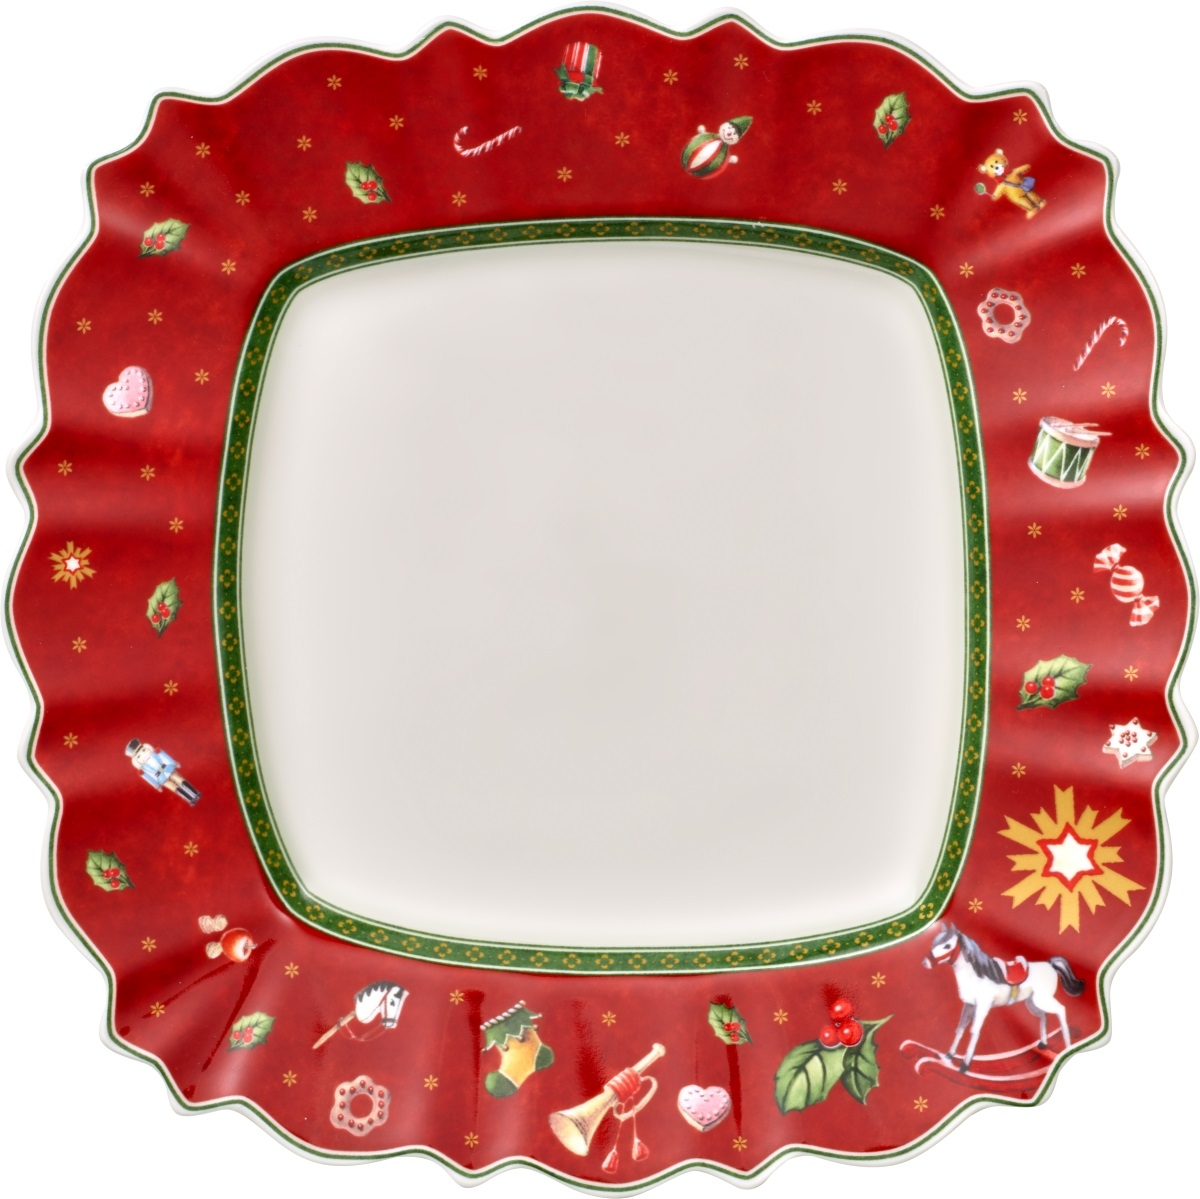 Farfurie plata Villeroy & Boch Toy's Delight Red 28.5x28.5cm poza